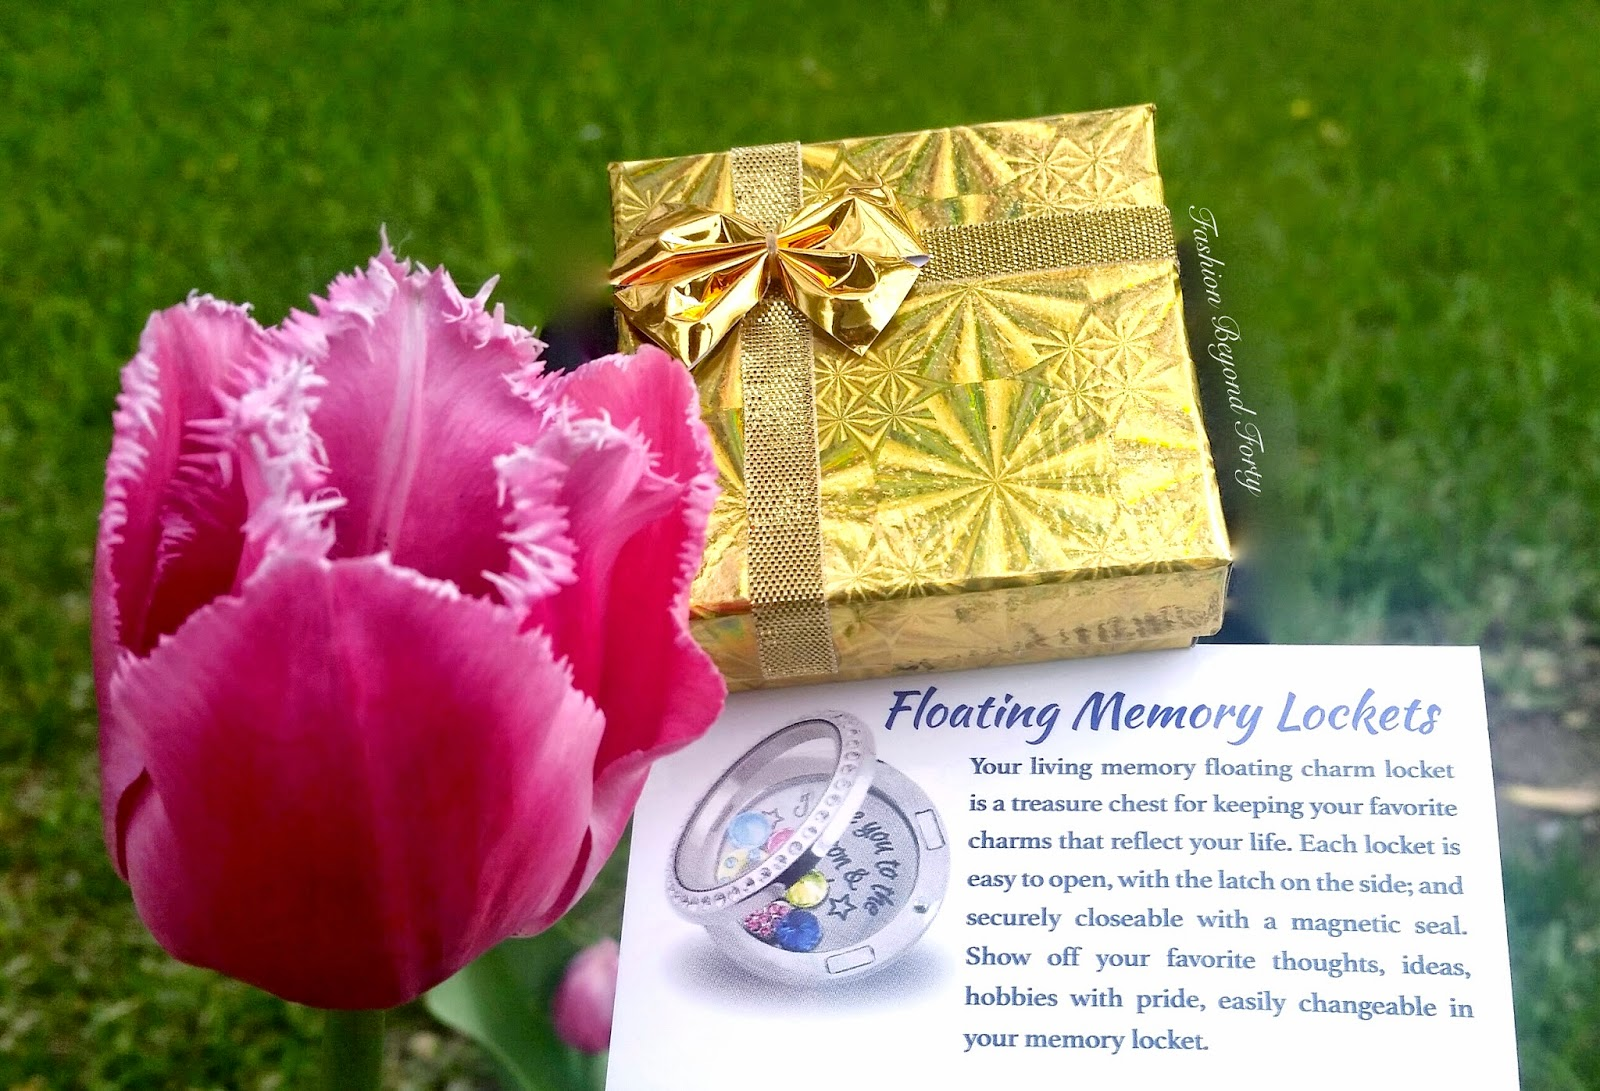 Mother's Day is Dazzling with Floating Charms Locket Necklaces From A Touch of DazzleMother's Day is Dazzling with Floating Charms Locket Necklaces From A Touch of Dazzle